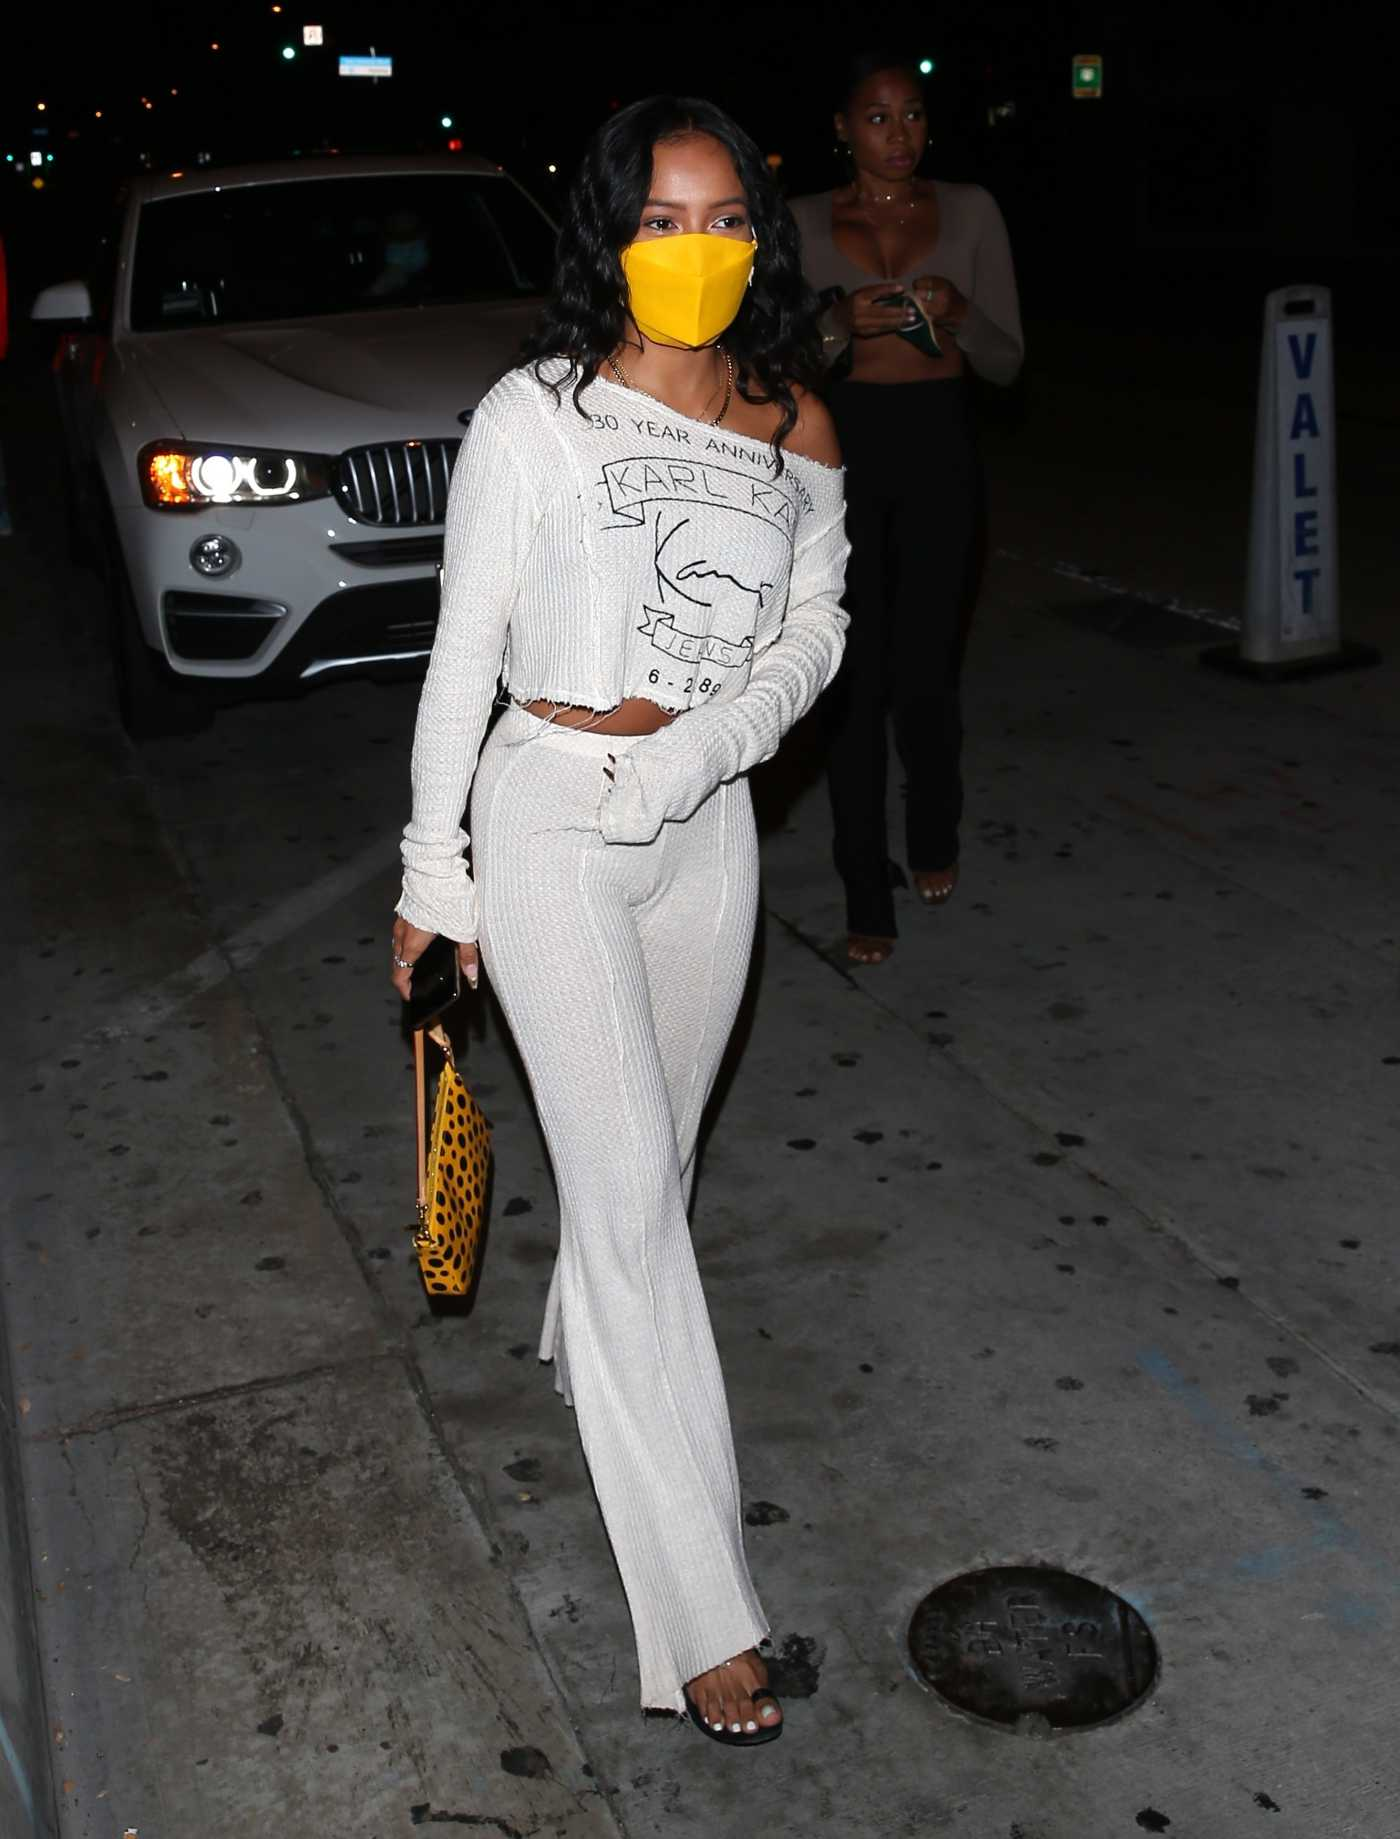 Karrueche Tran in a Yellow Protective Mask Arrives to Dinner at Catch Restaurant in West Hollywood 09/13/2020